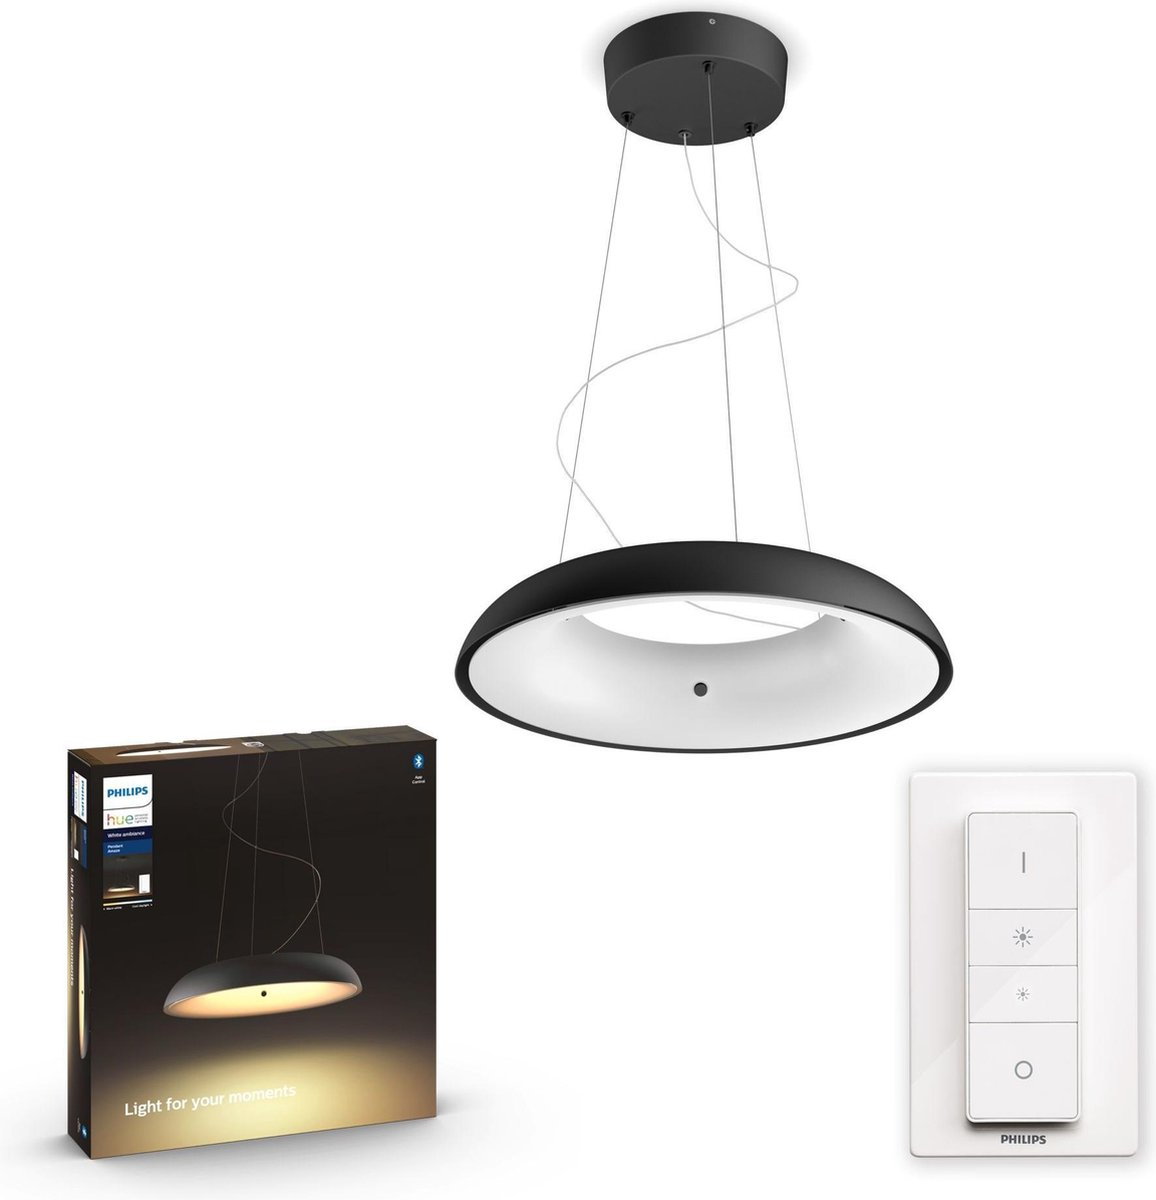 Philips Hue - Amaze Hue Pendant Black - White Ambiance - Bluetooth - Dimmer Included